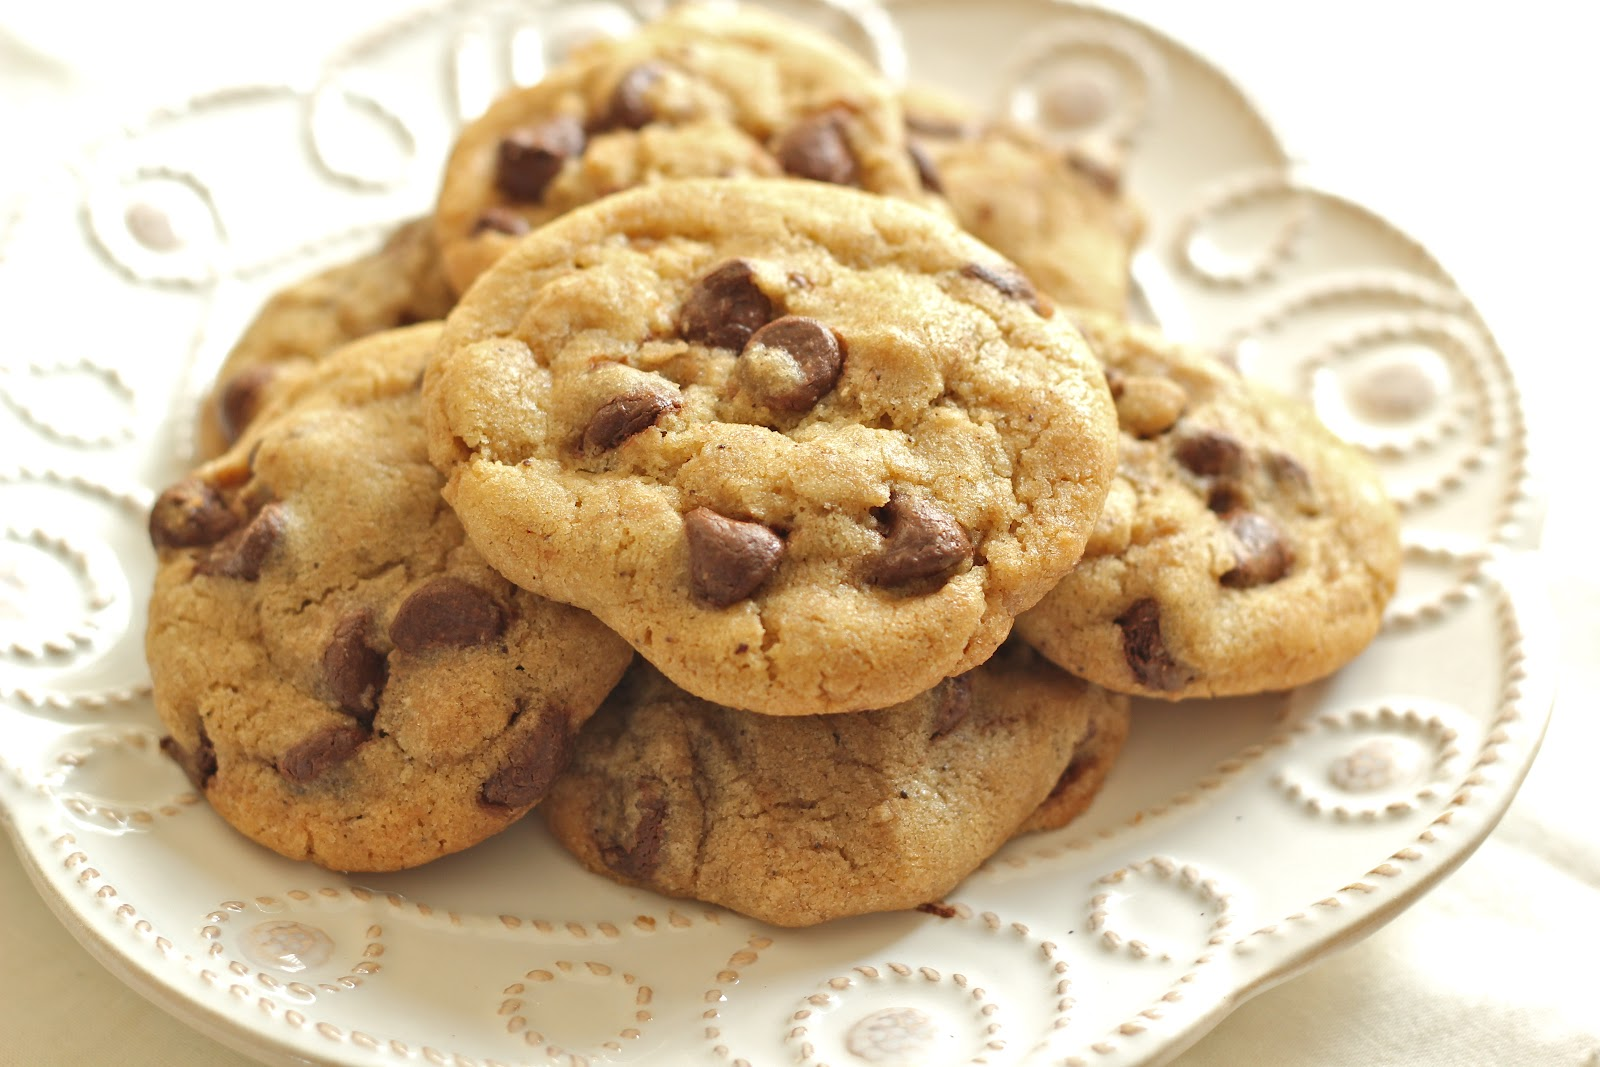 Chocolate Chip Cookie Wallpaper - WallpaperSafari